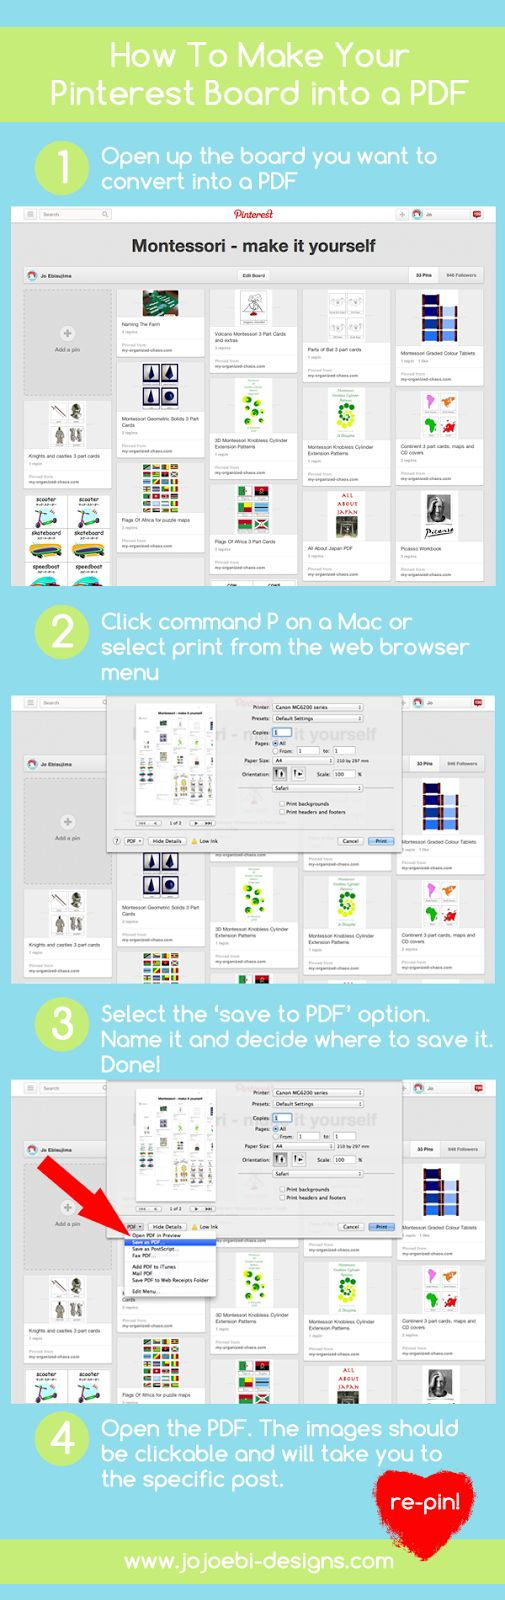 How To Turn Your Pinterest Board Into A PDF - just tickled by Jo's asking us to 'repin' :)